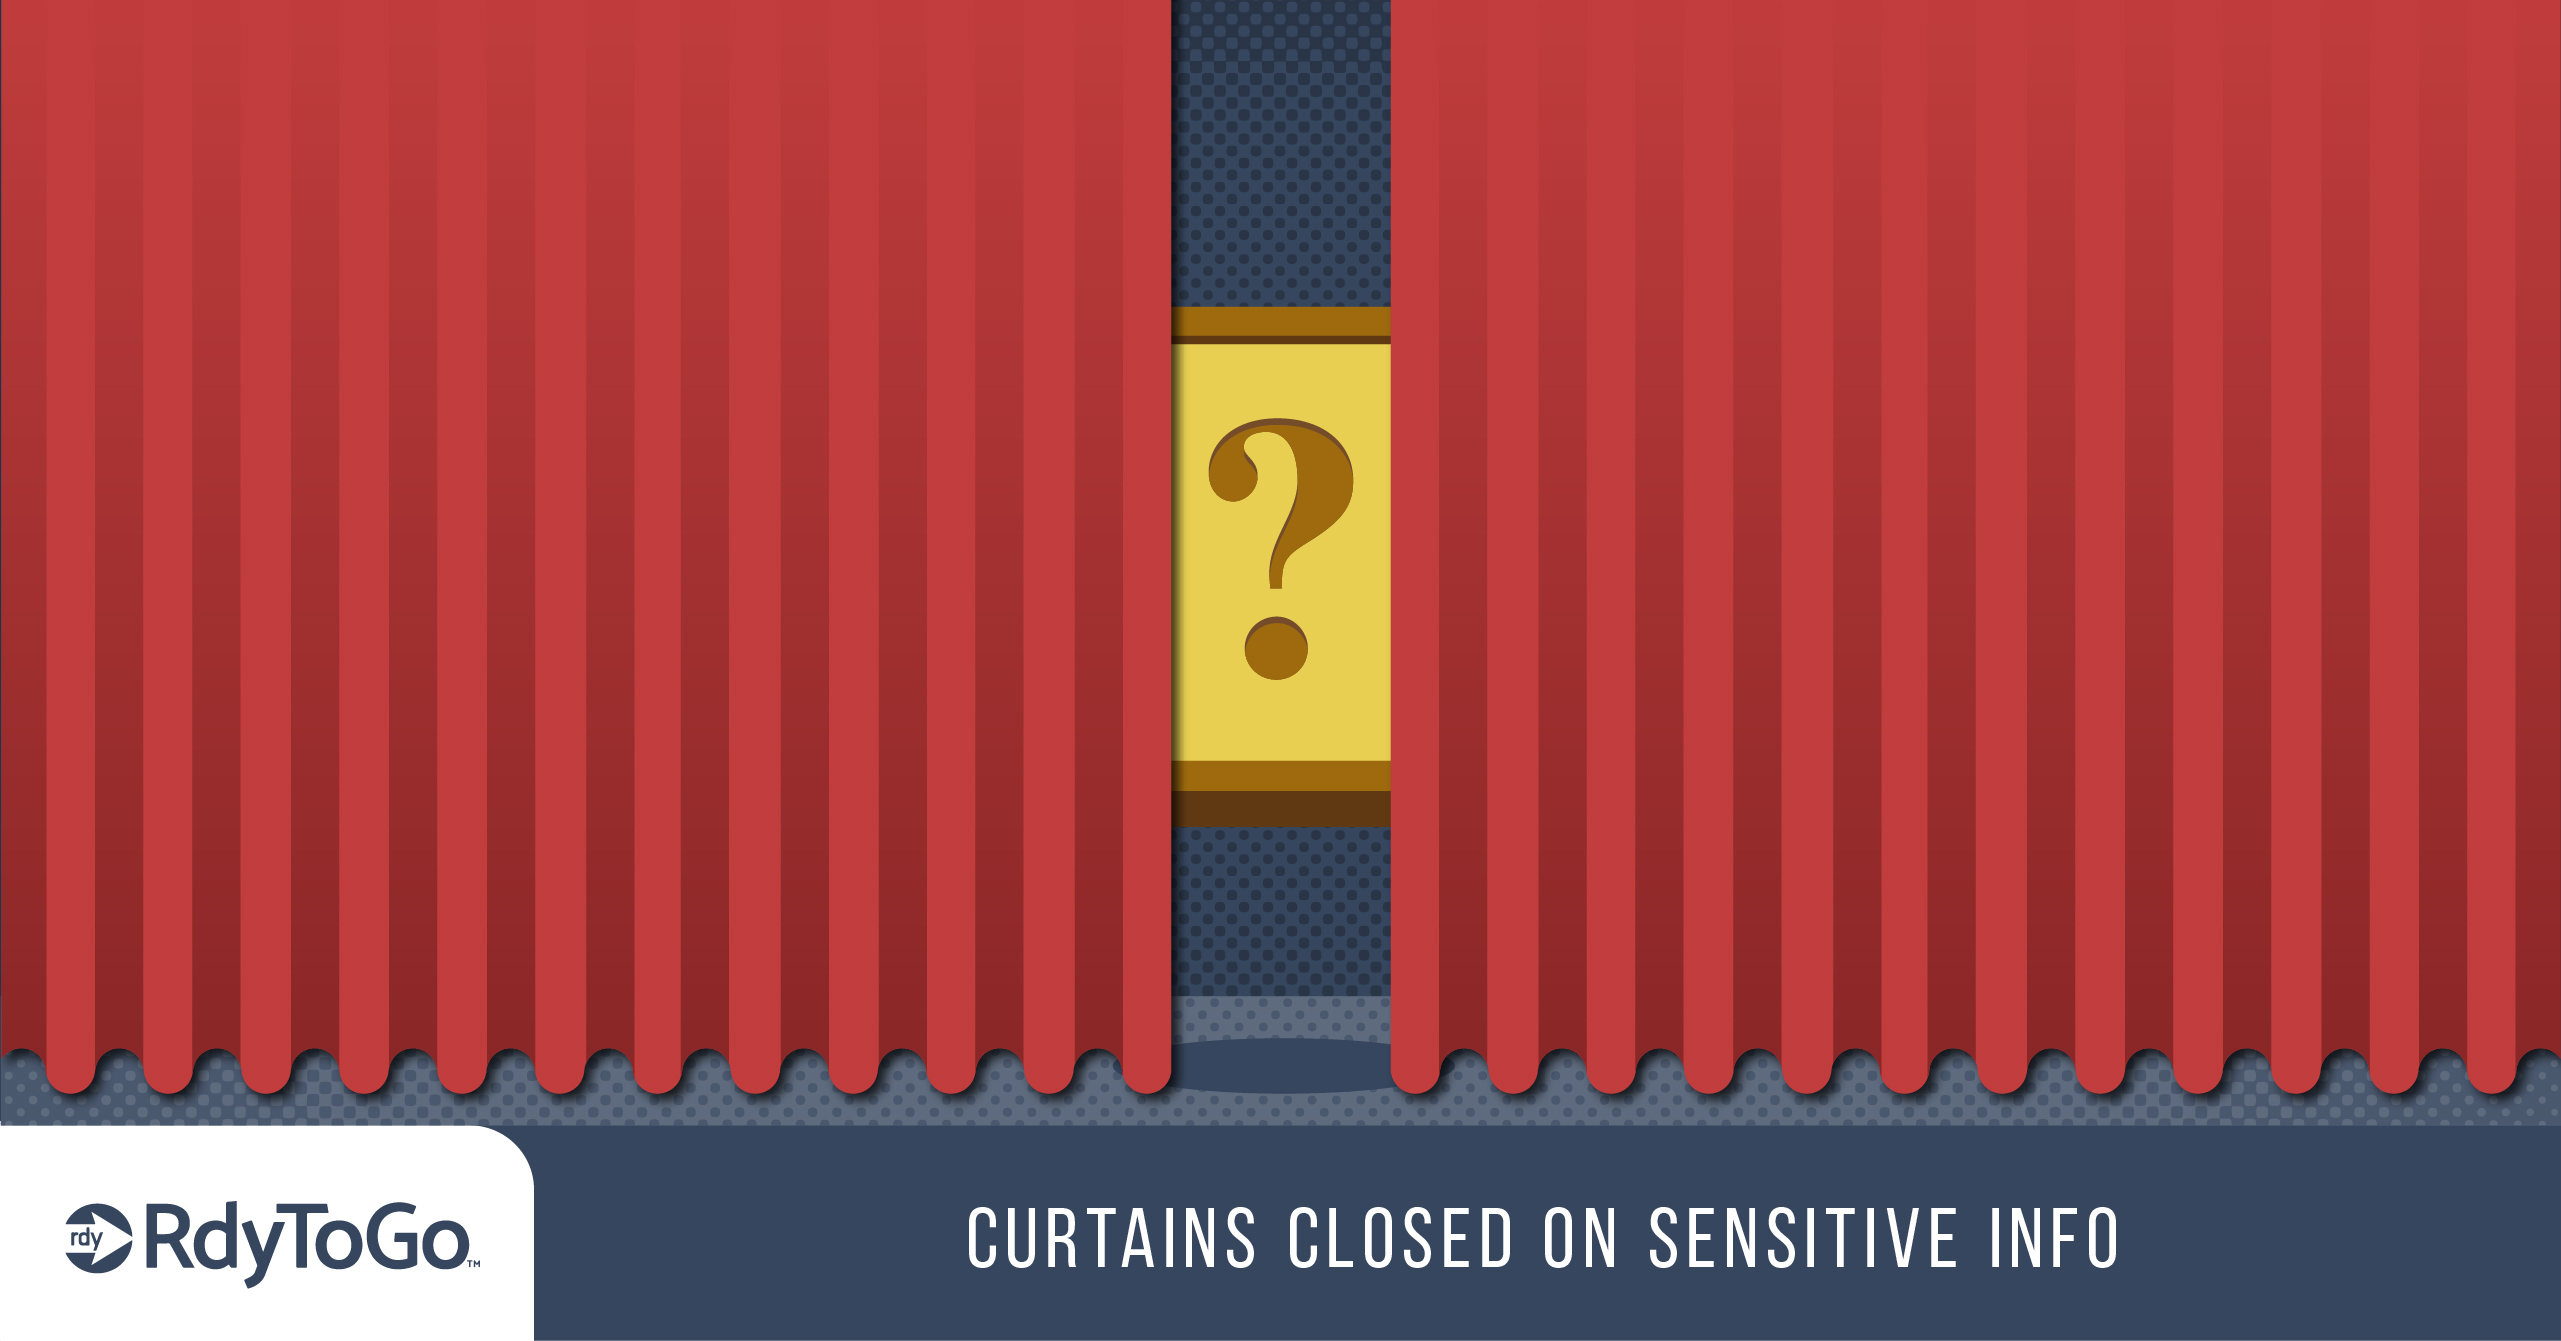 Curtains Closed on Sensitive Info